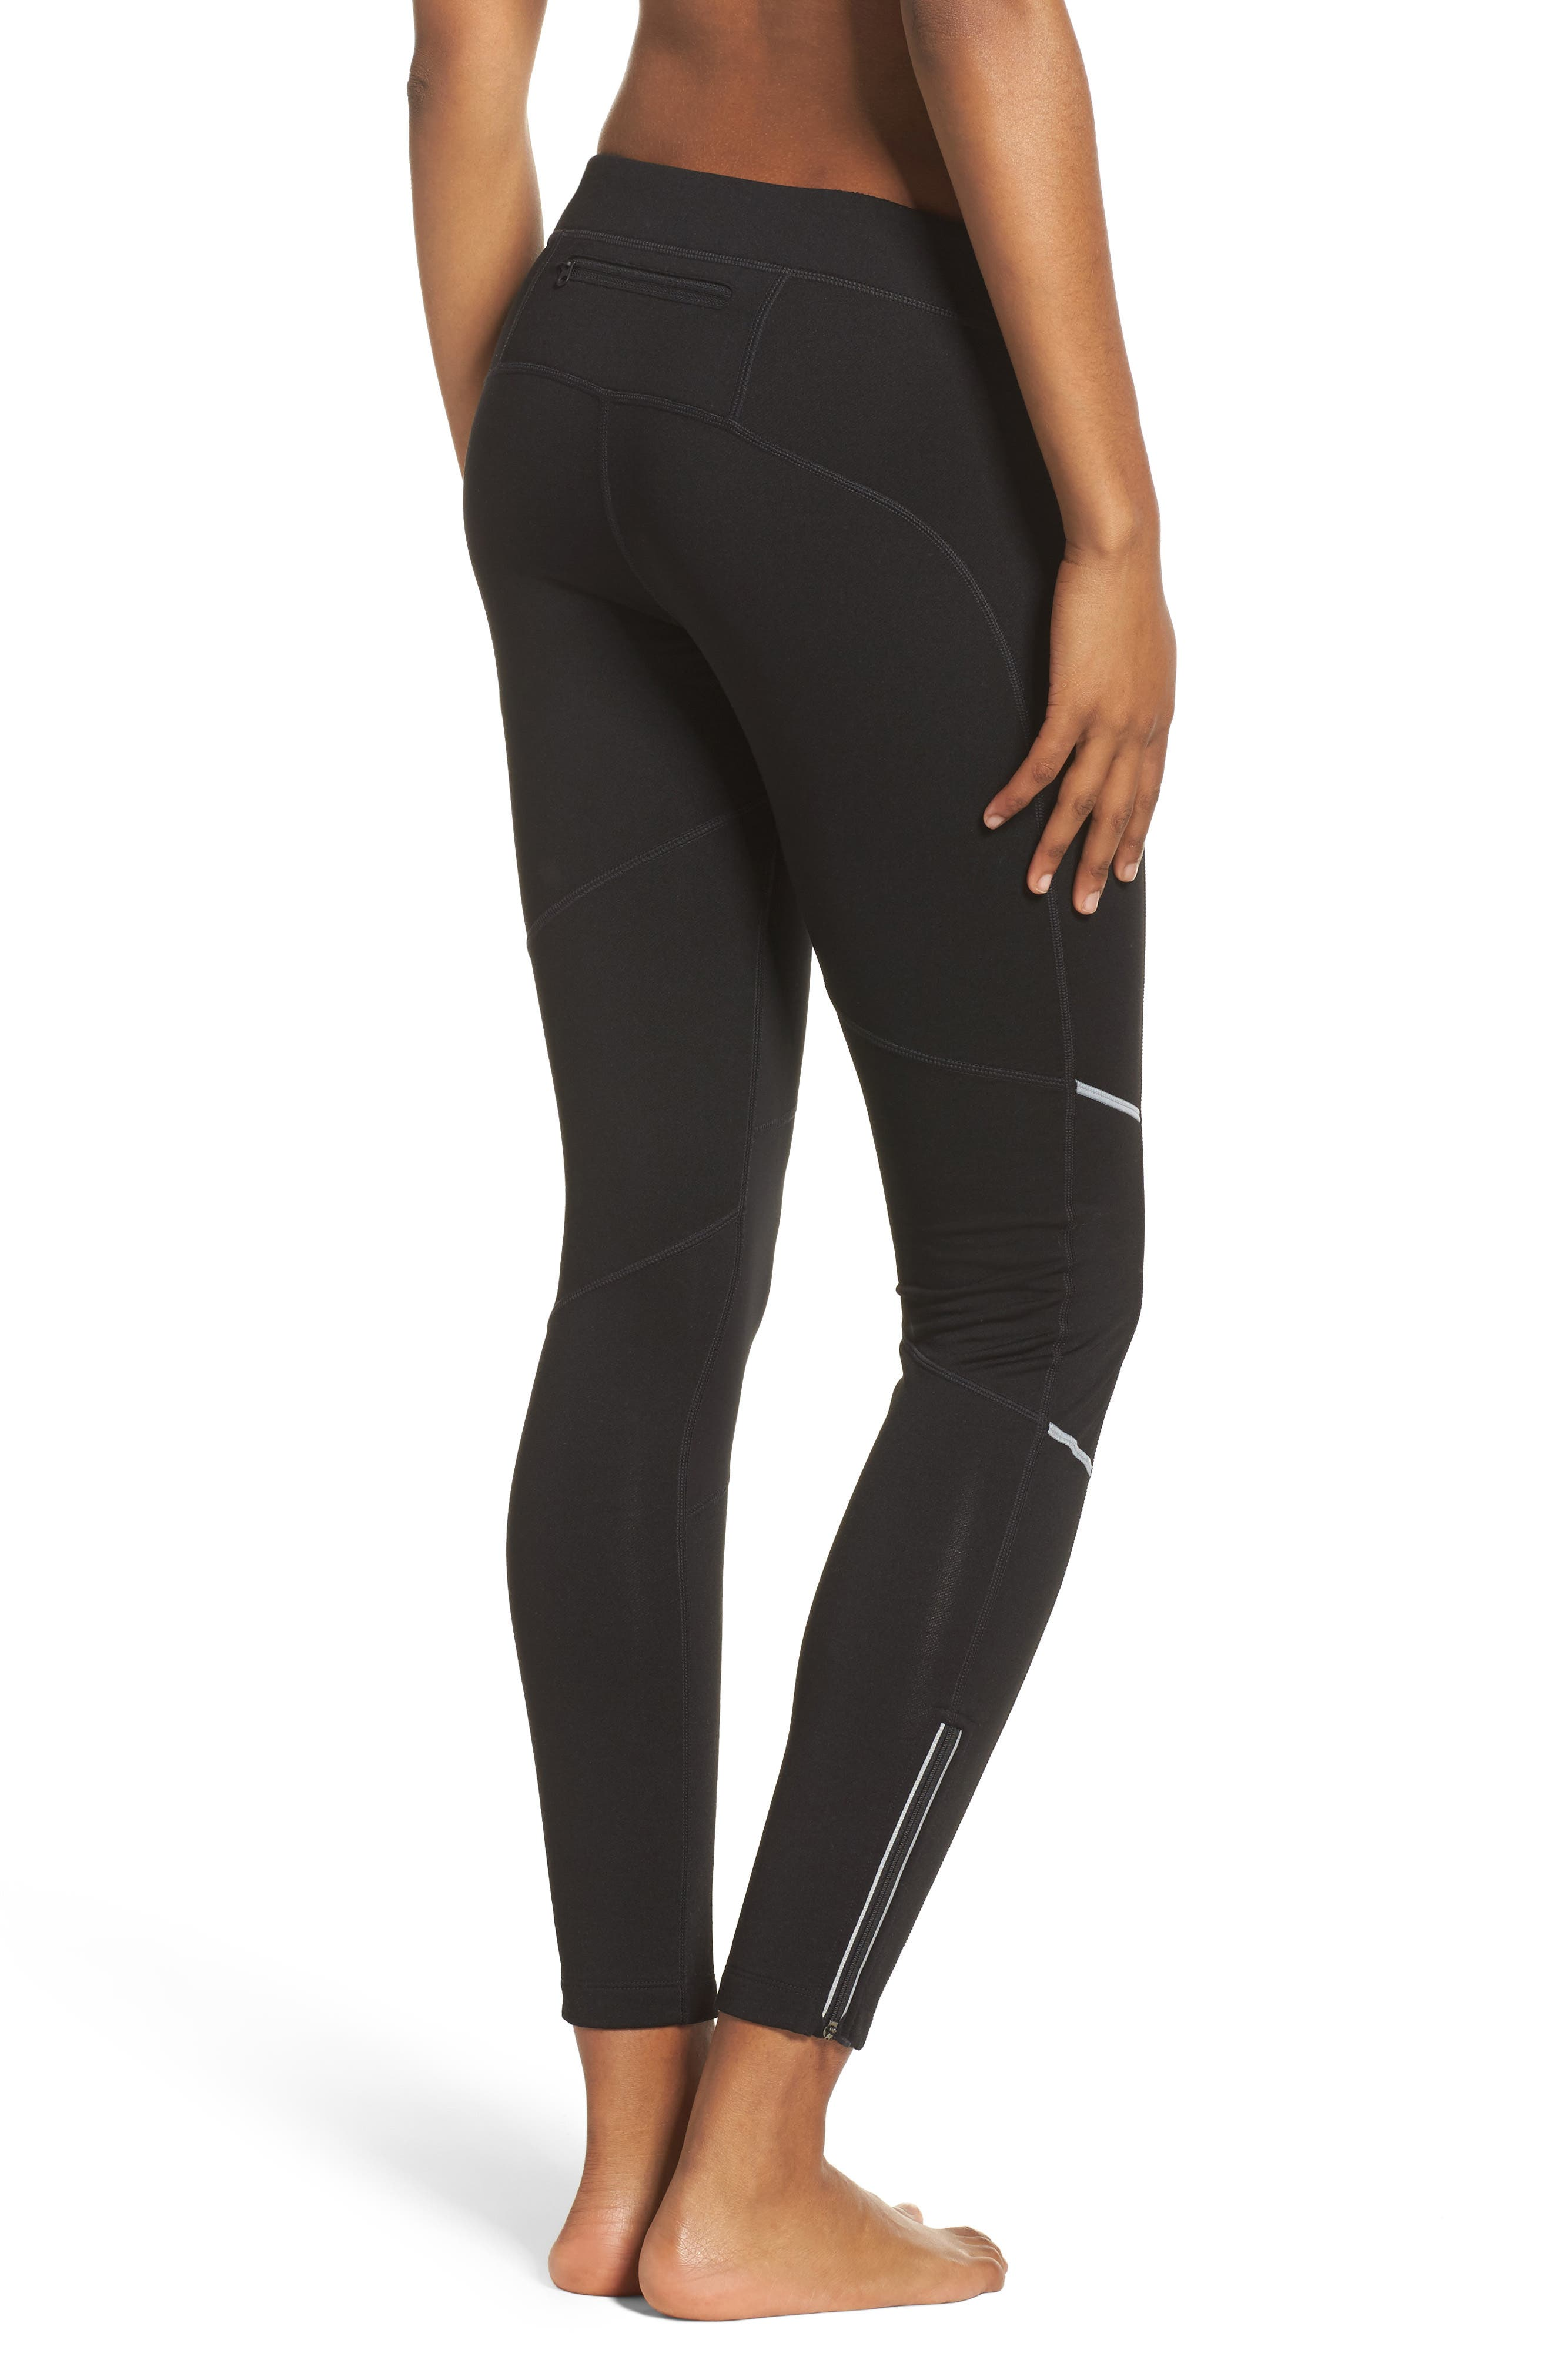 PhD Wind Tights,                             Alternate thumbnail 2, color,